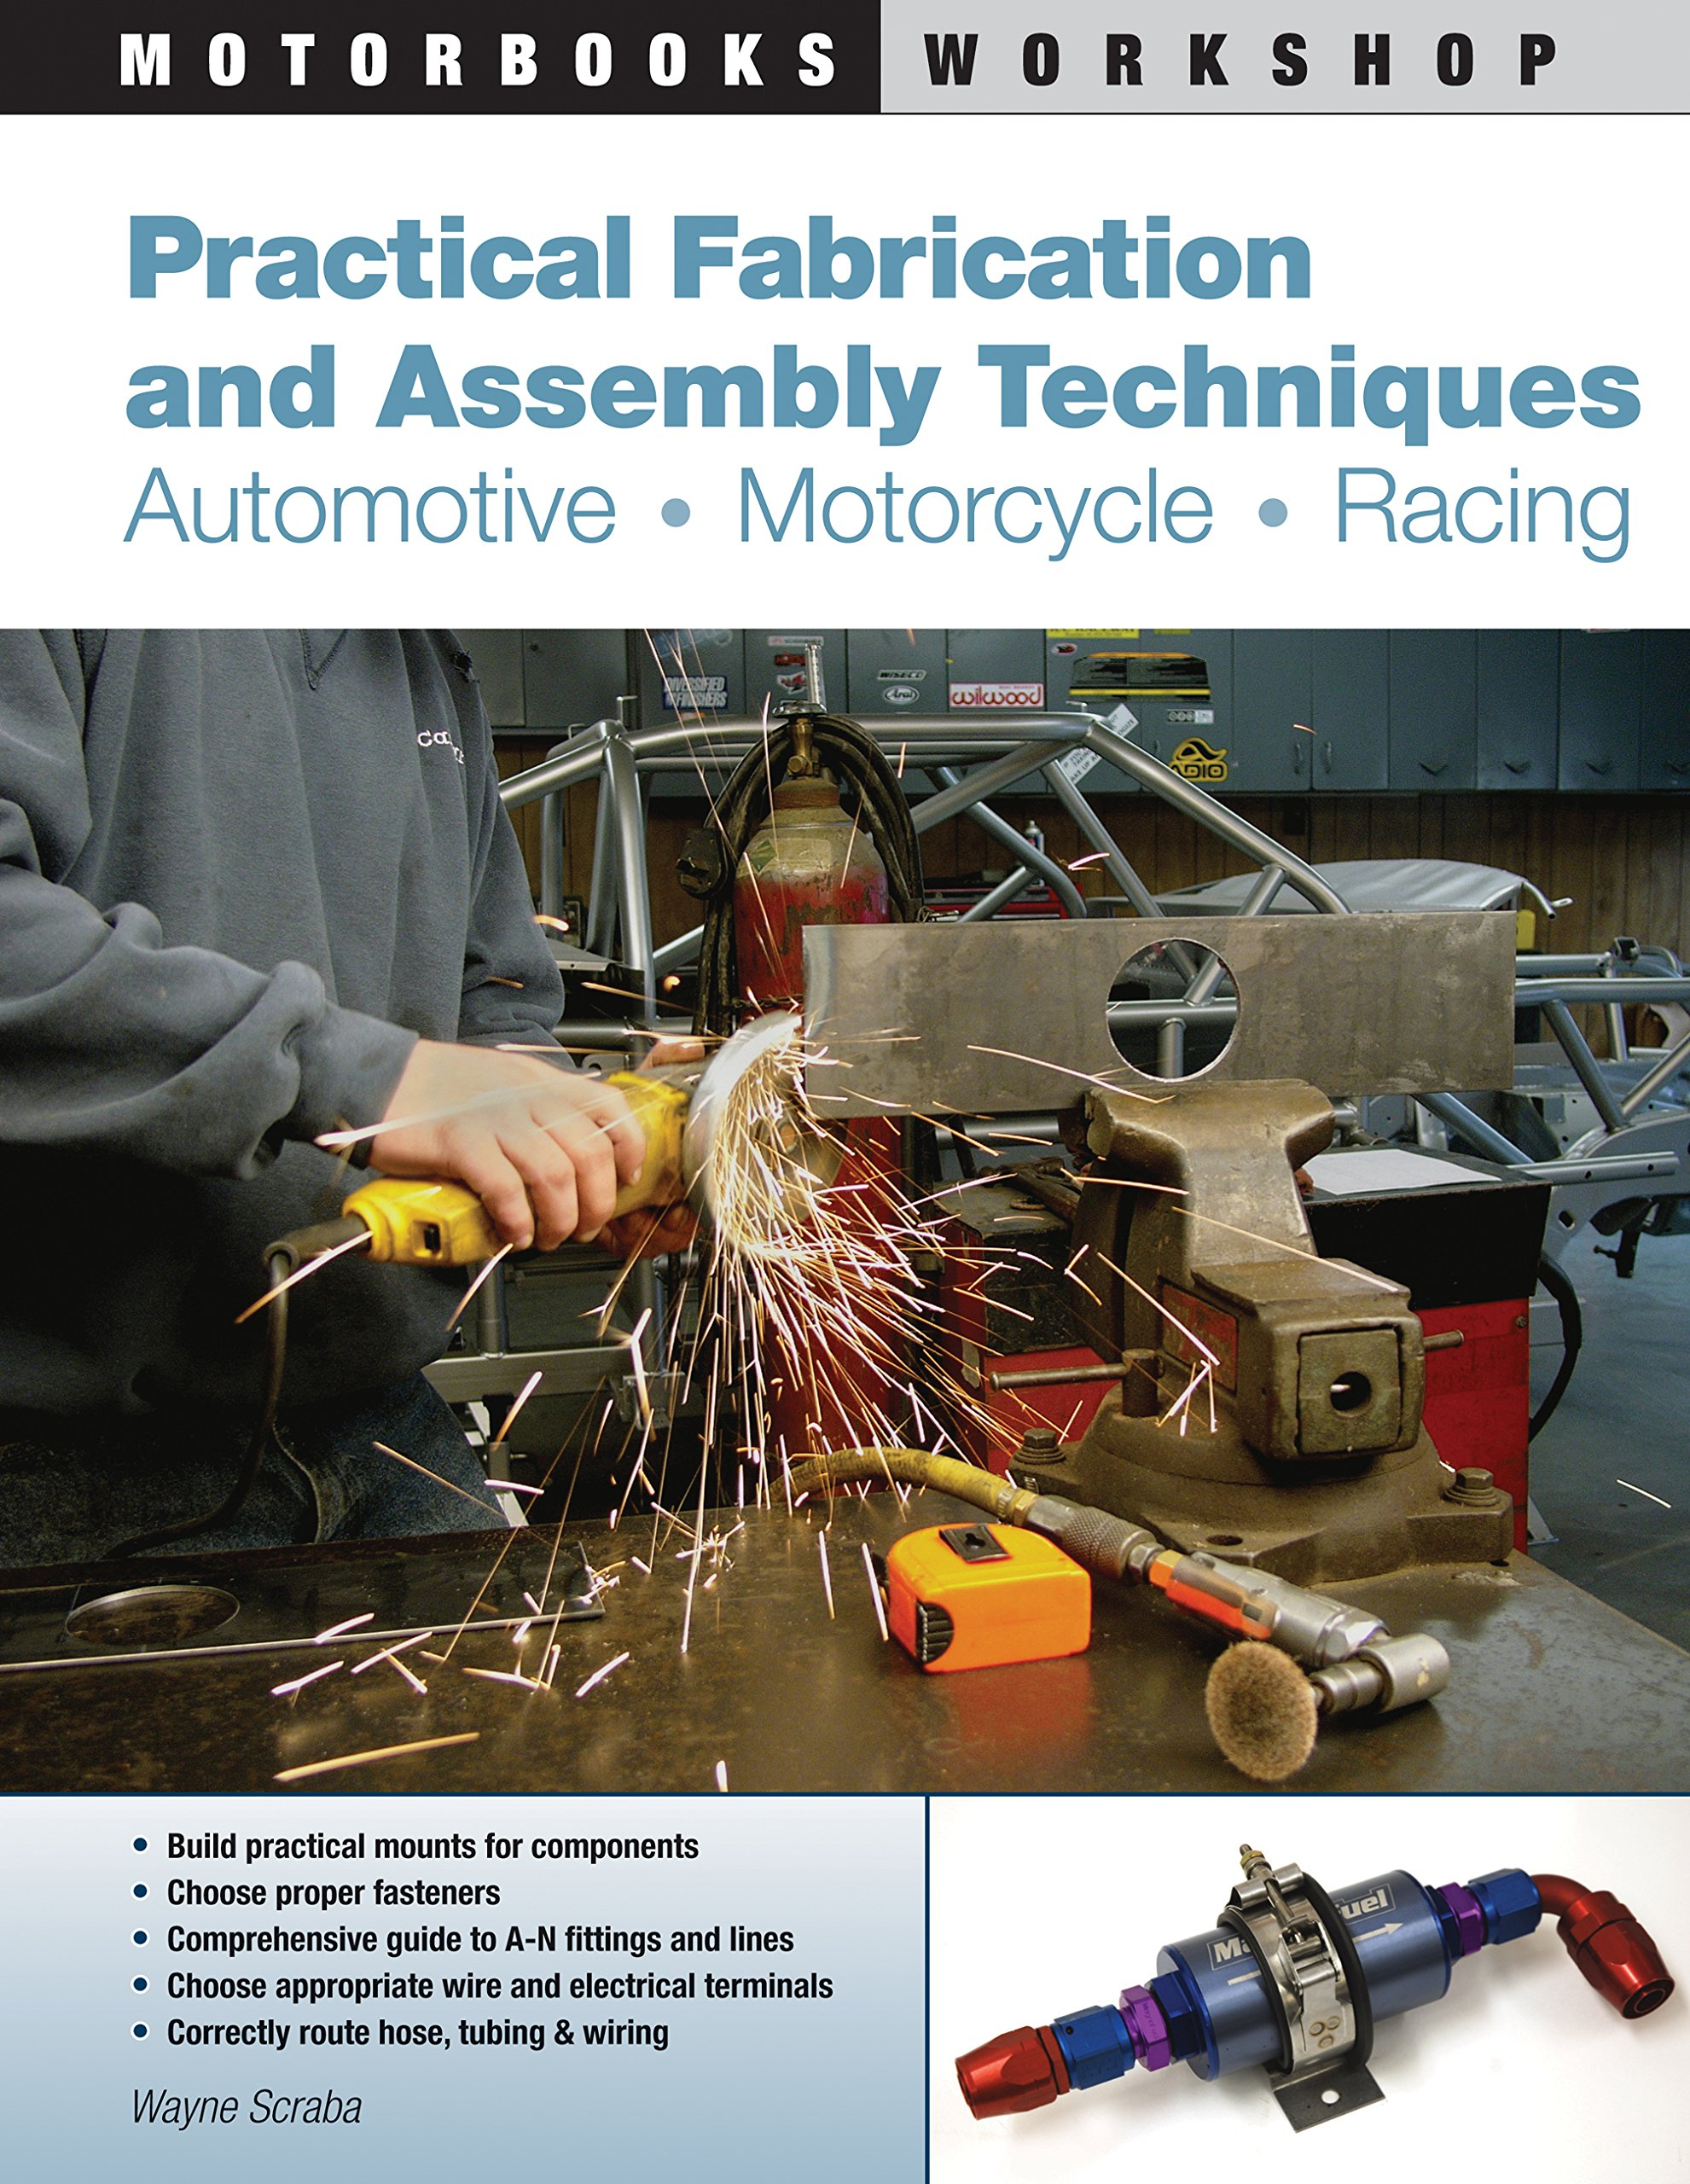 Practical Fabrication and Assembly Techniques: Automotive, Motorcycle,  Racing (Motorbooks Workshop): Amazon.co.uk: Wayne Scraba: 9780760338001:  Books